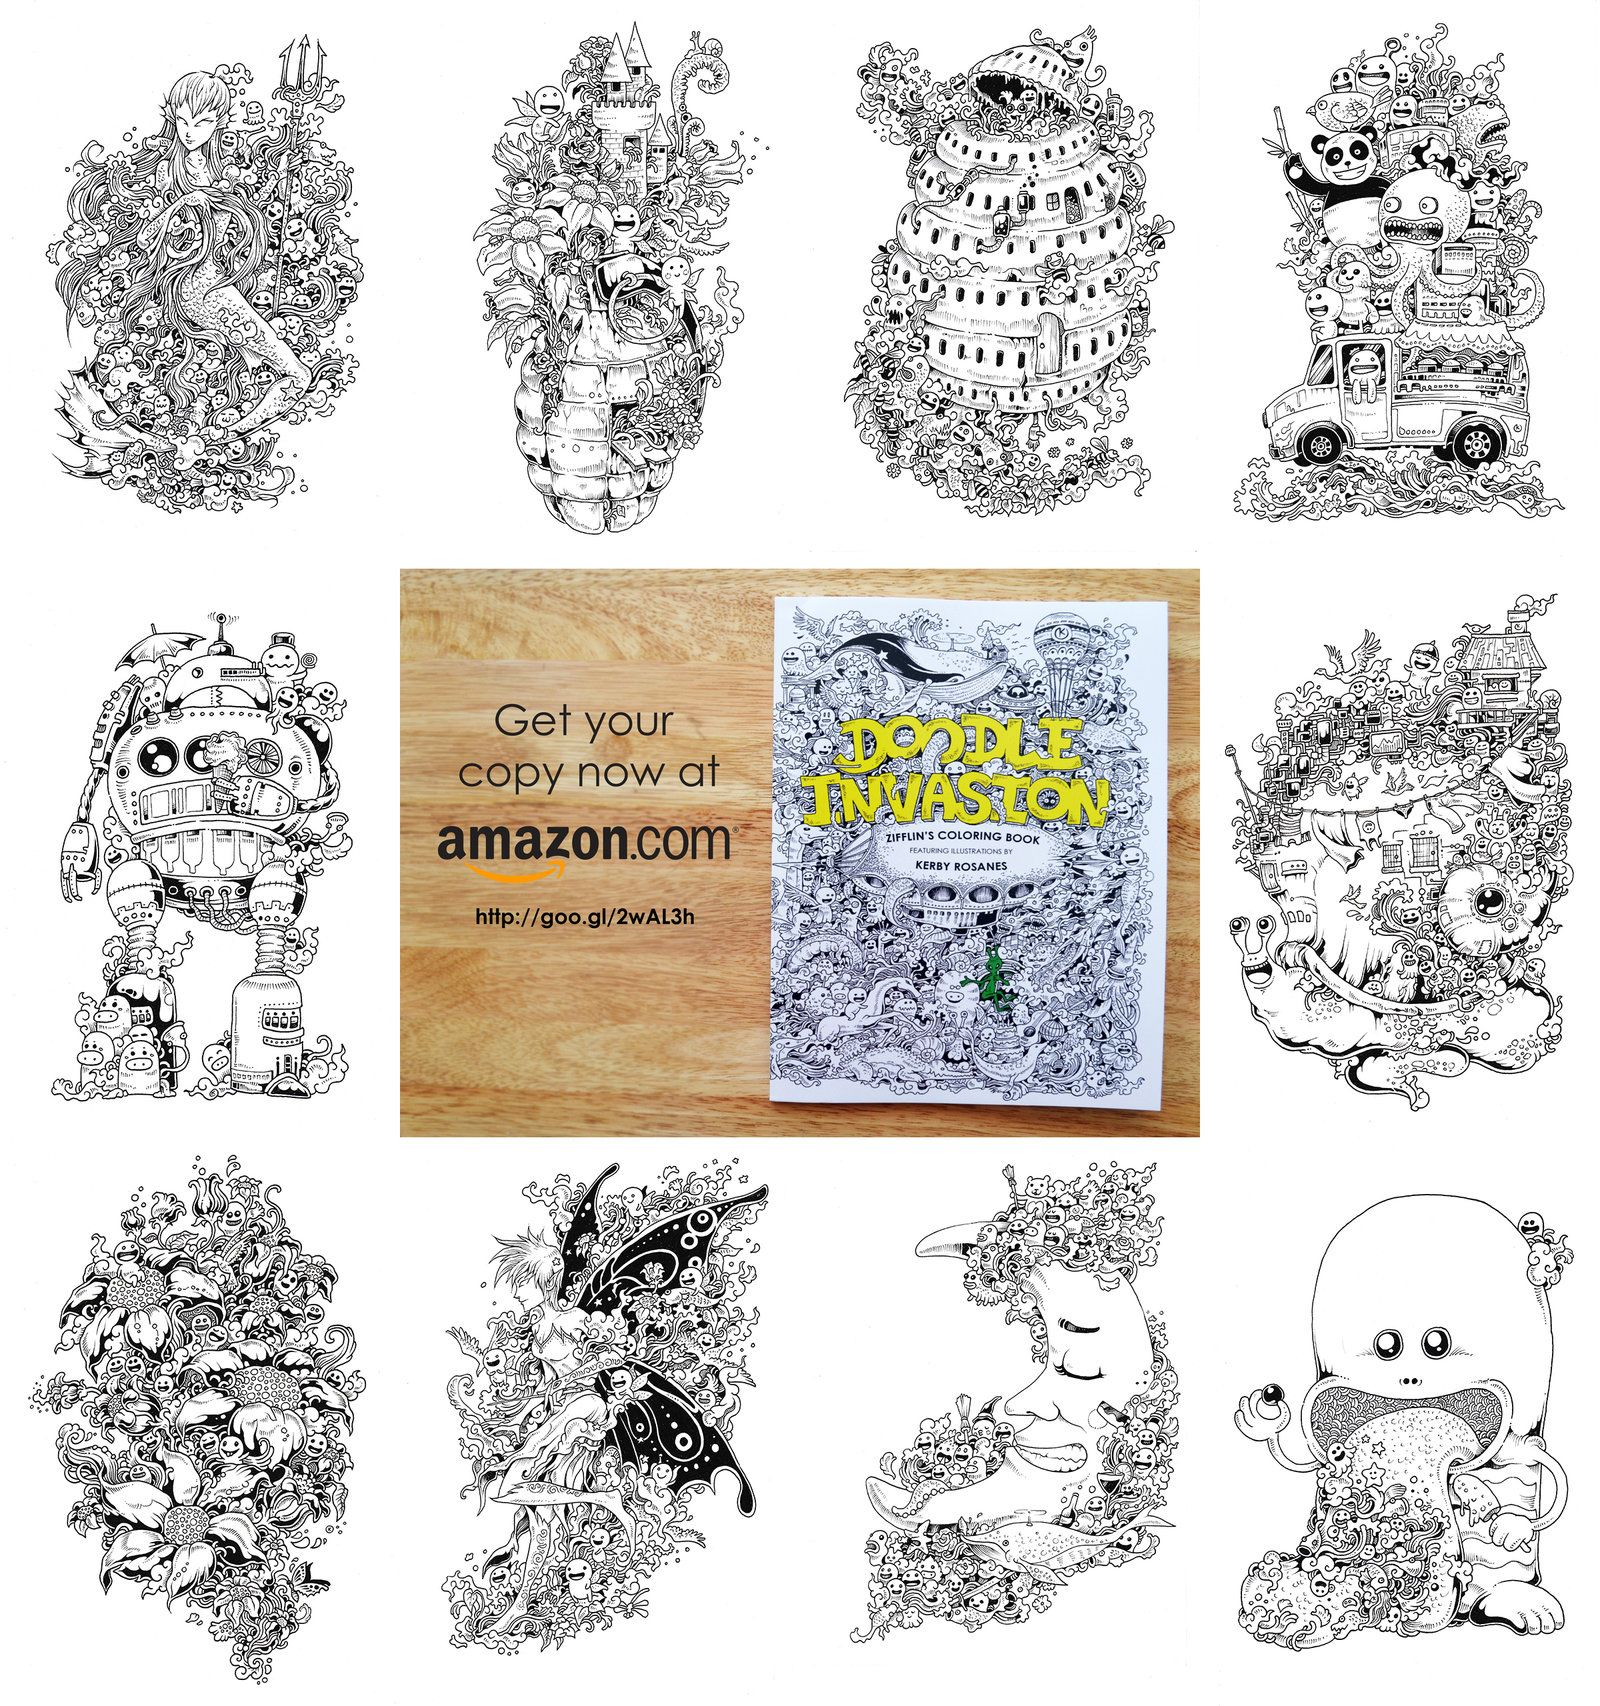 Selected Pages From Doodle Invasion Coloring Book By Kerbyrosanesdeviantart On DeviantART